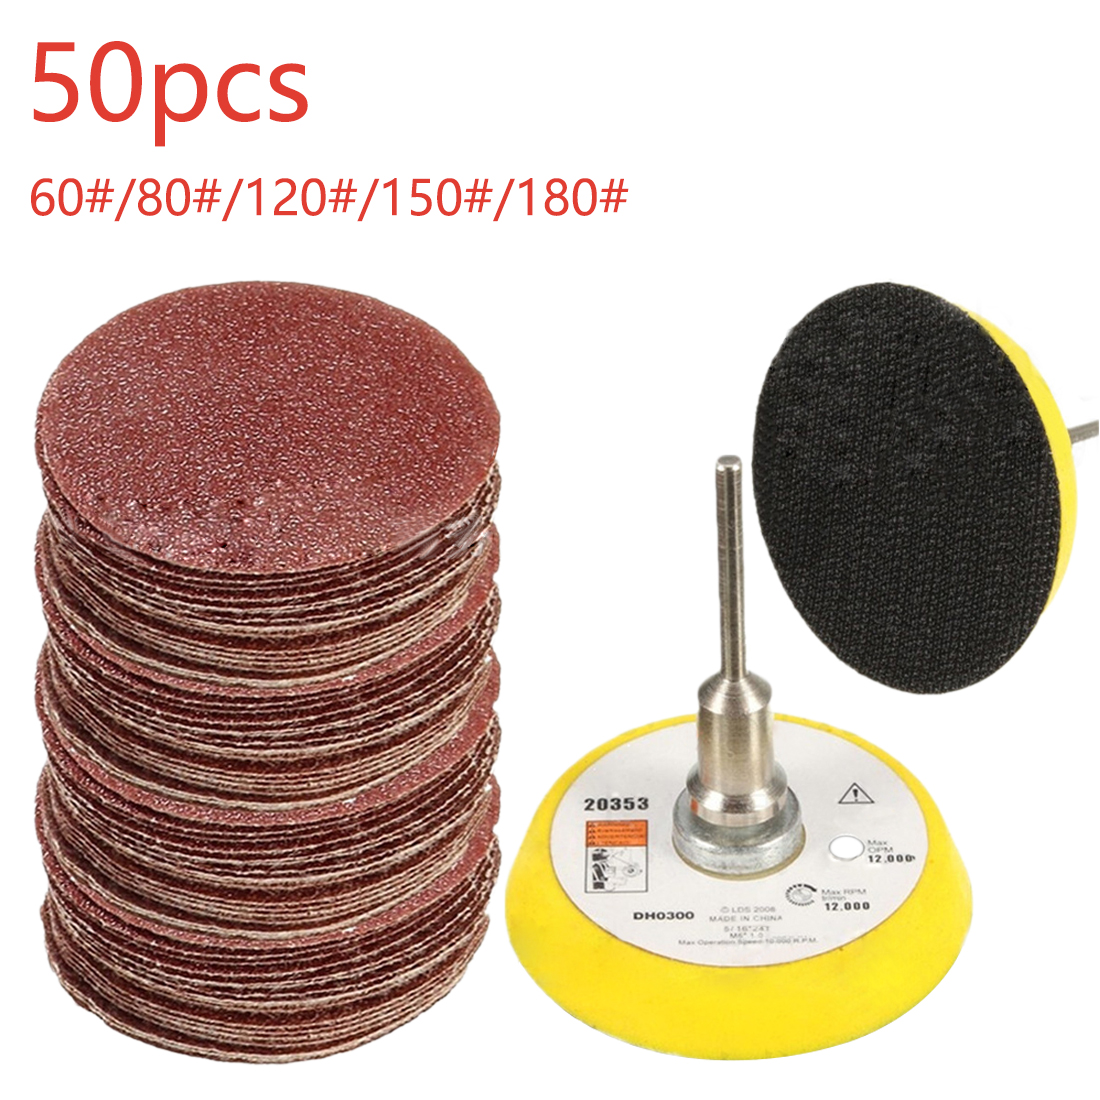 50PCS Sander Disc Sanding Pad Polishing 50mm 60-180 Grit Paper + 1pc Hook Loop Plate Fit Dremel 4000 Electric Grinder Abrasive